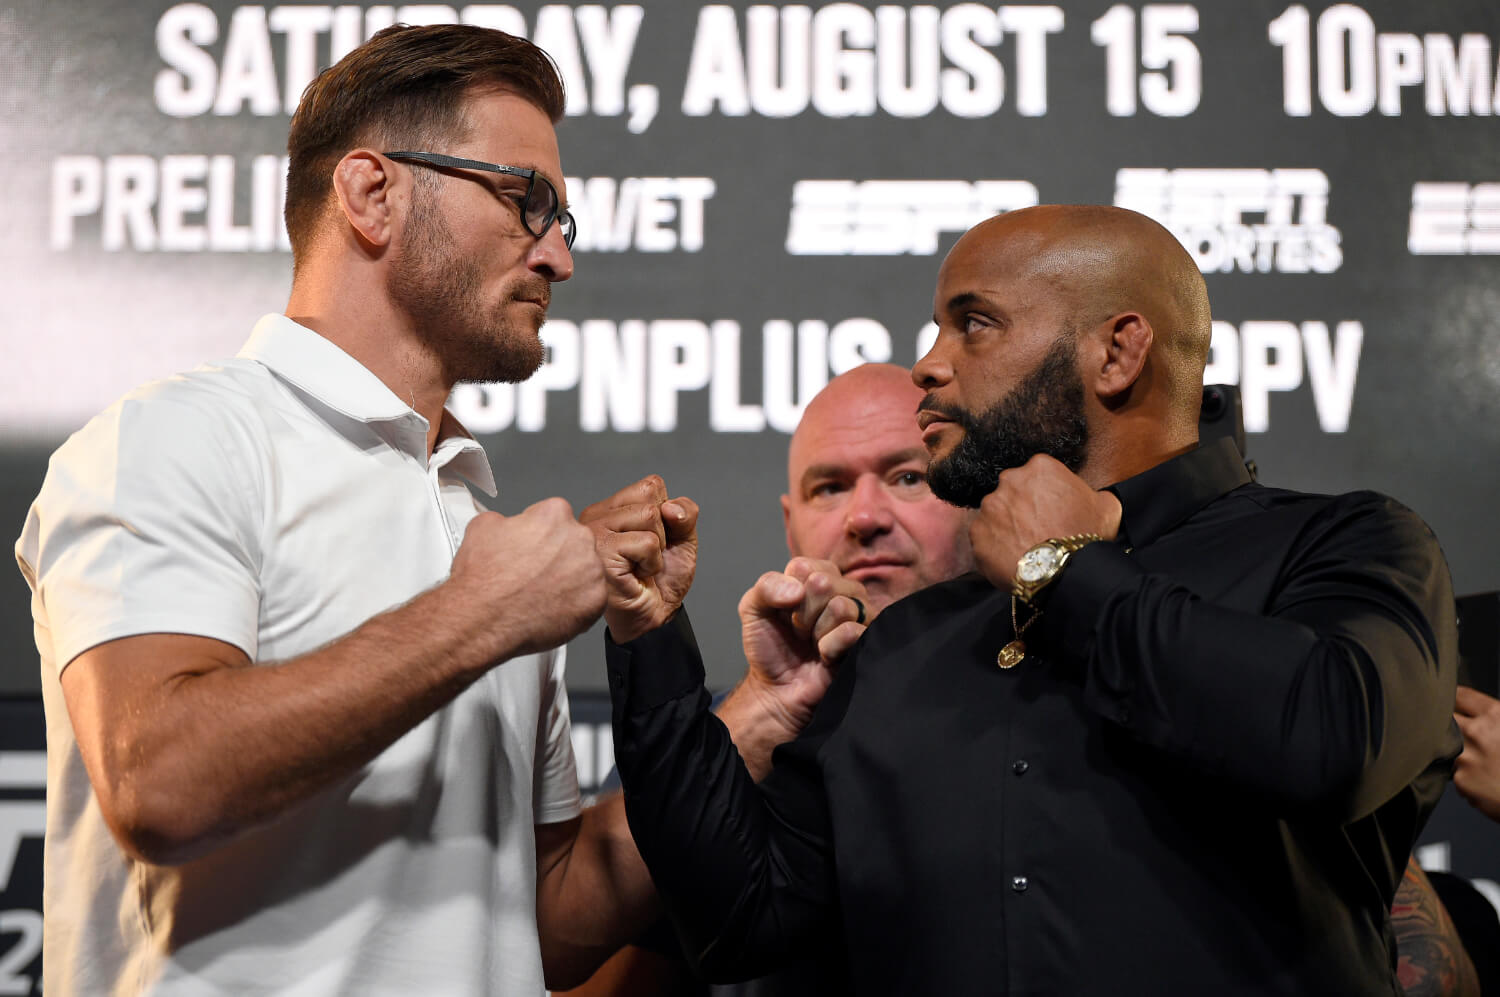 Daniel Cormier and Stipe Miocic face off Saturday for heavyweight supremacy